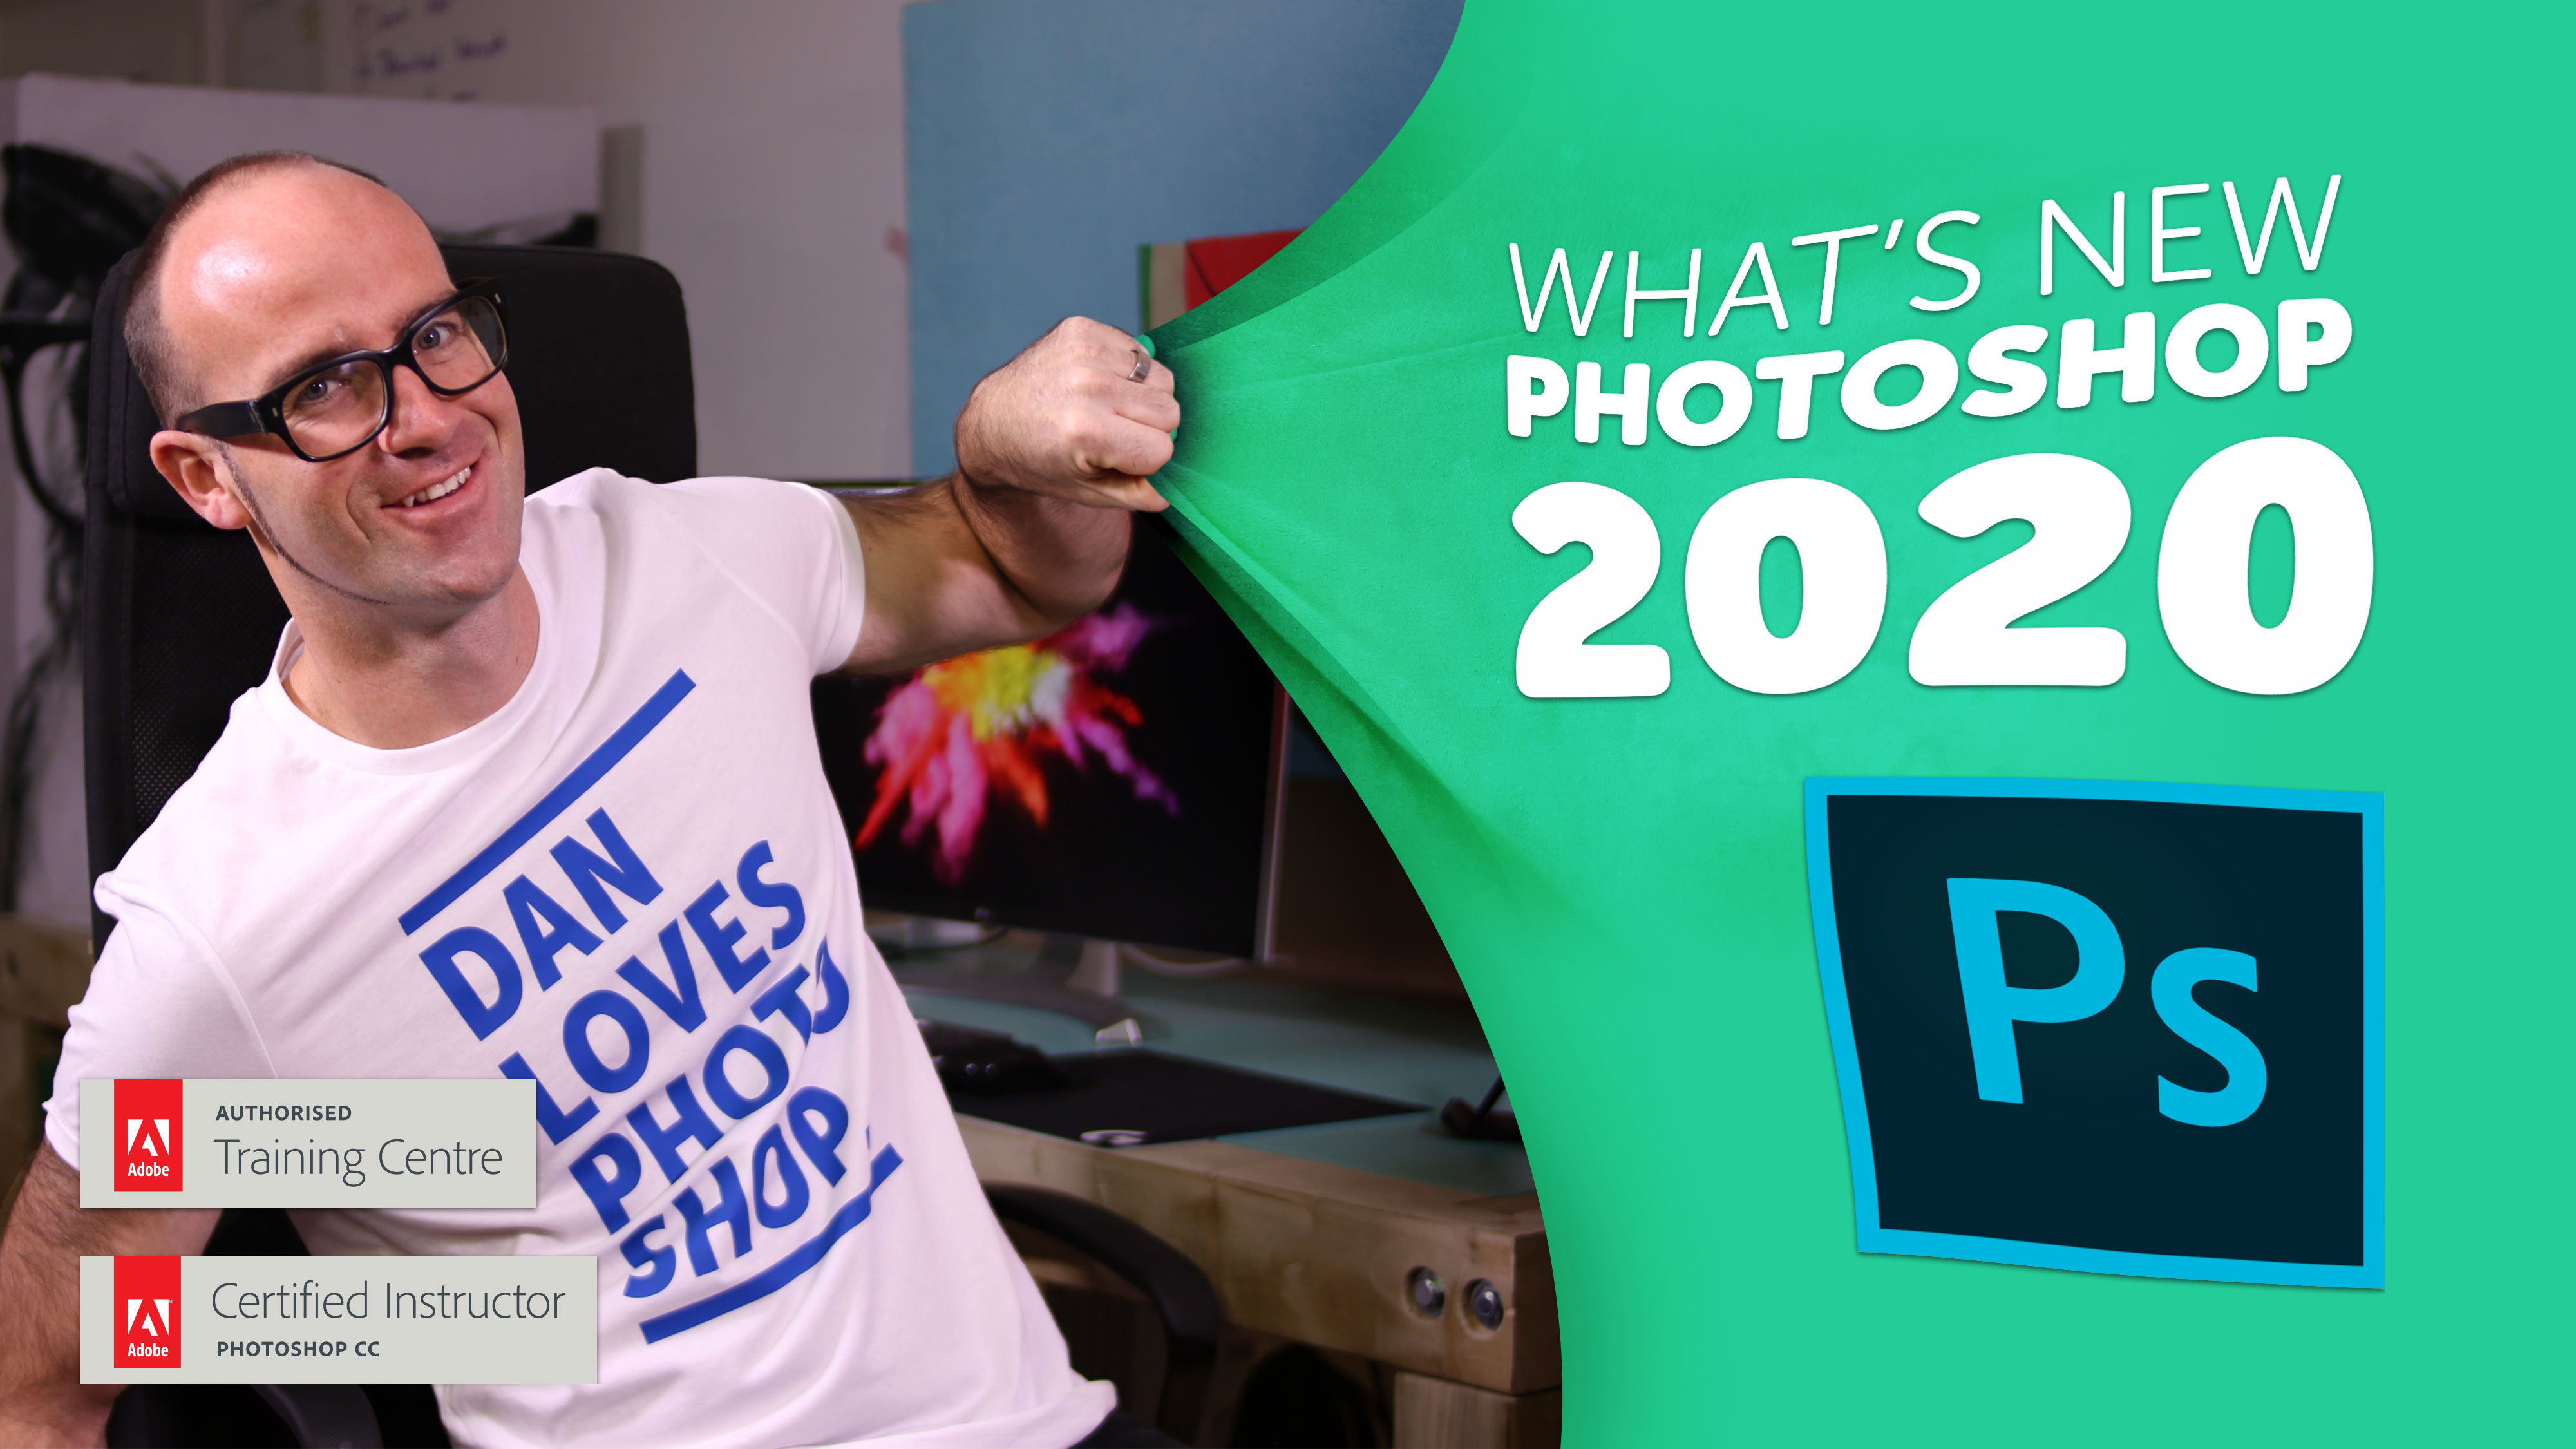 Photoshop Course Updates New Features 2020